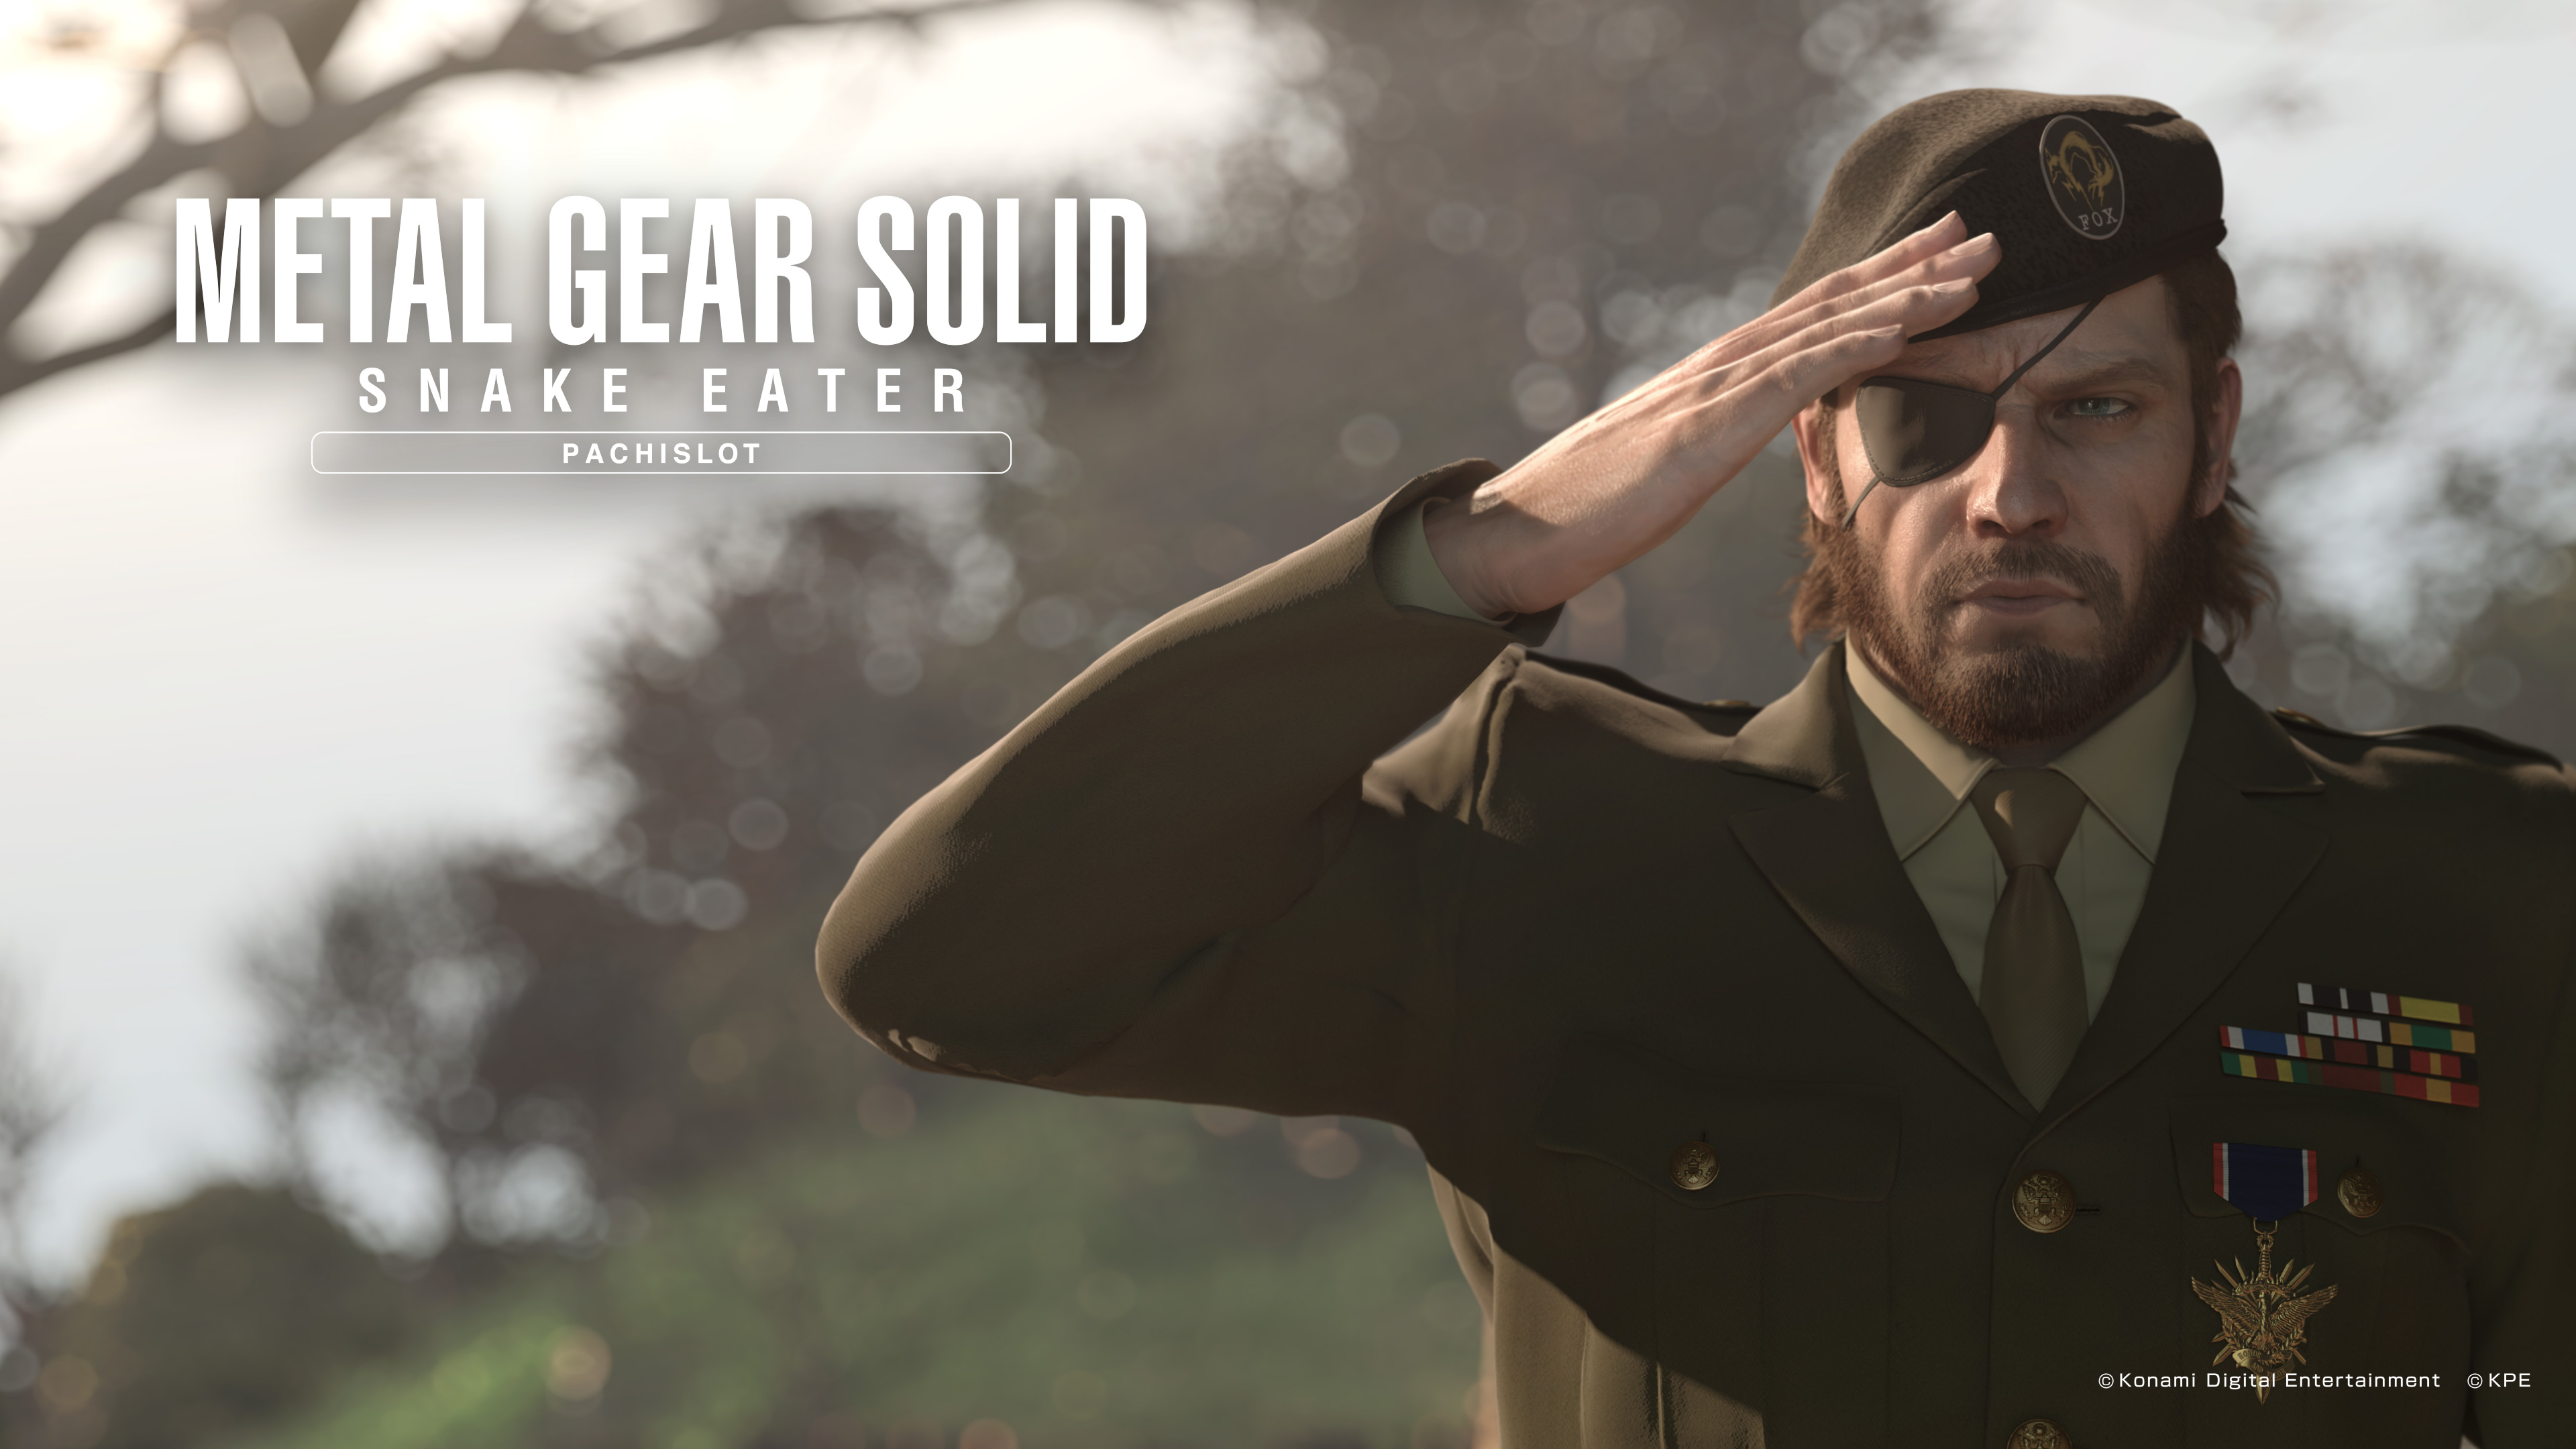 MGS-Snake-Eater-Pachislot-Wallpaper-PC-5